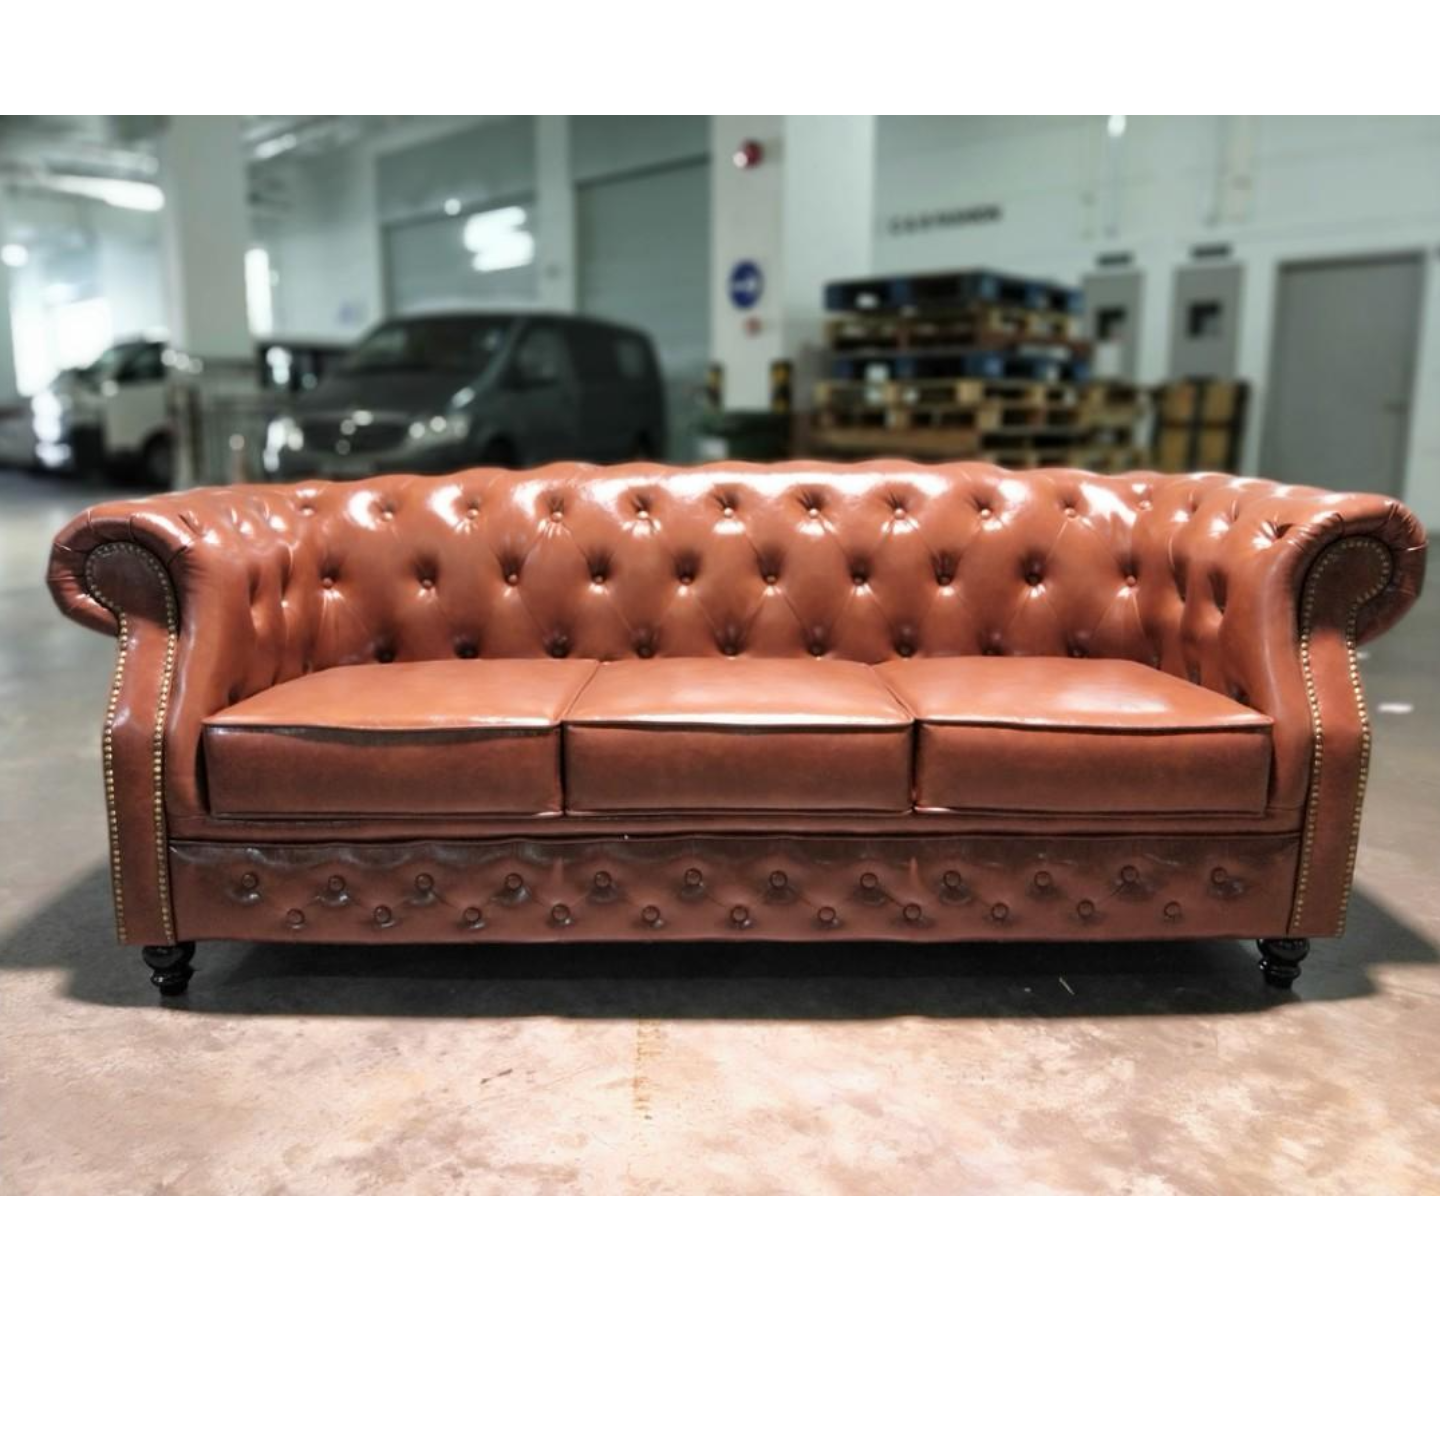 BOTTEVA Chesterfield 3 Seater Sofa in GLOSS BROWN PU